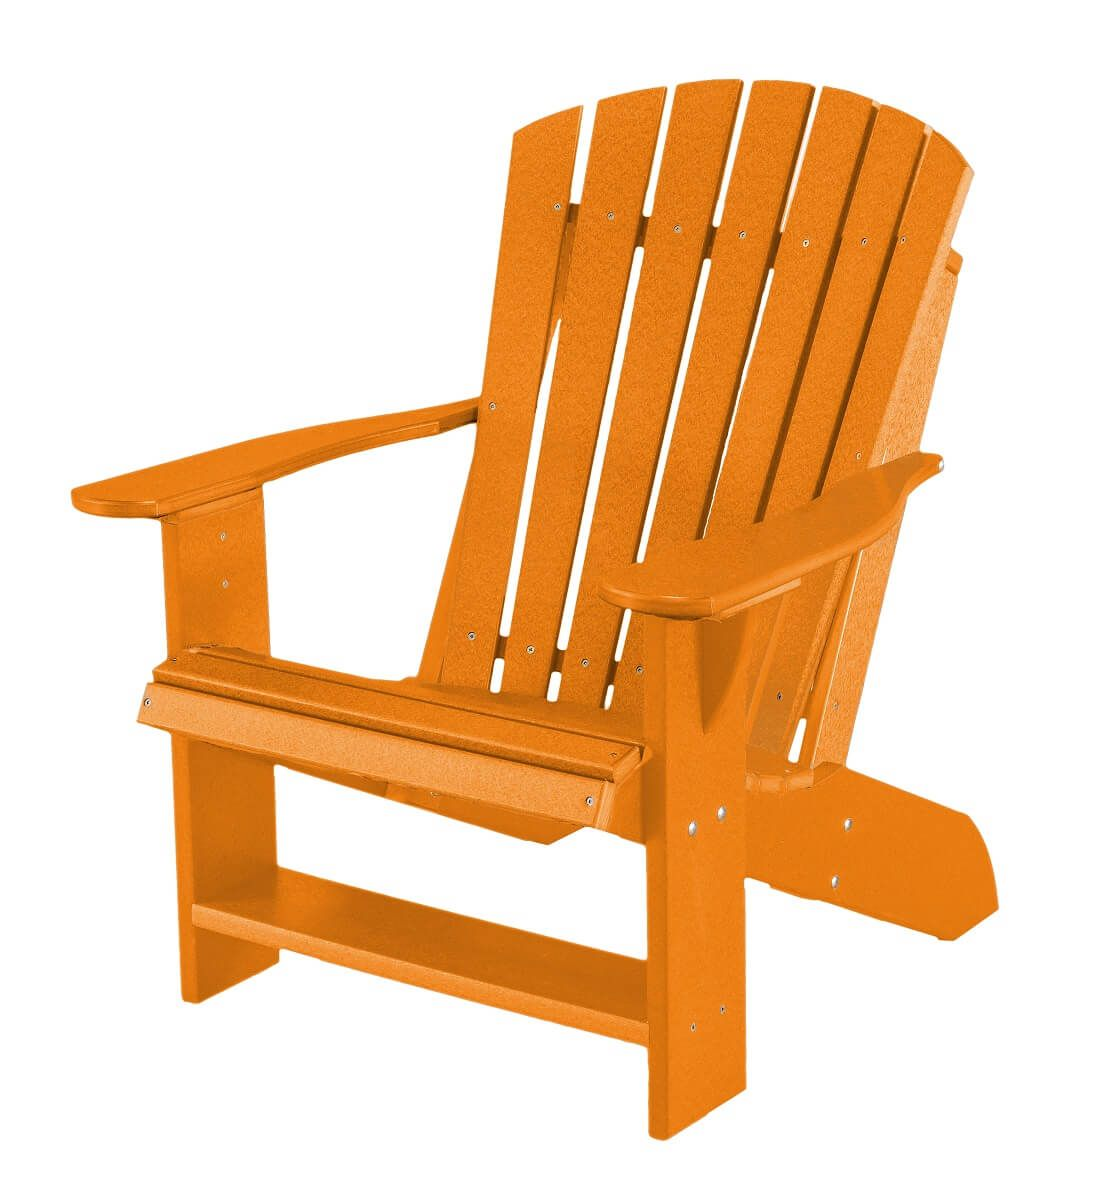 Bright Orange Sidra Adirondack Chair